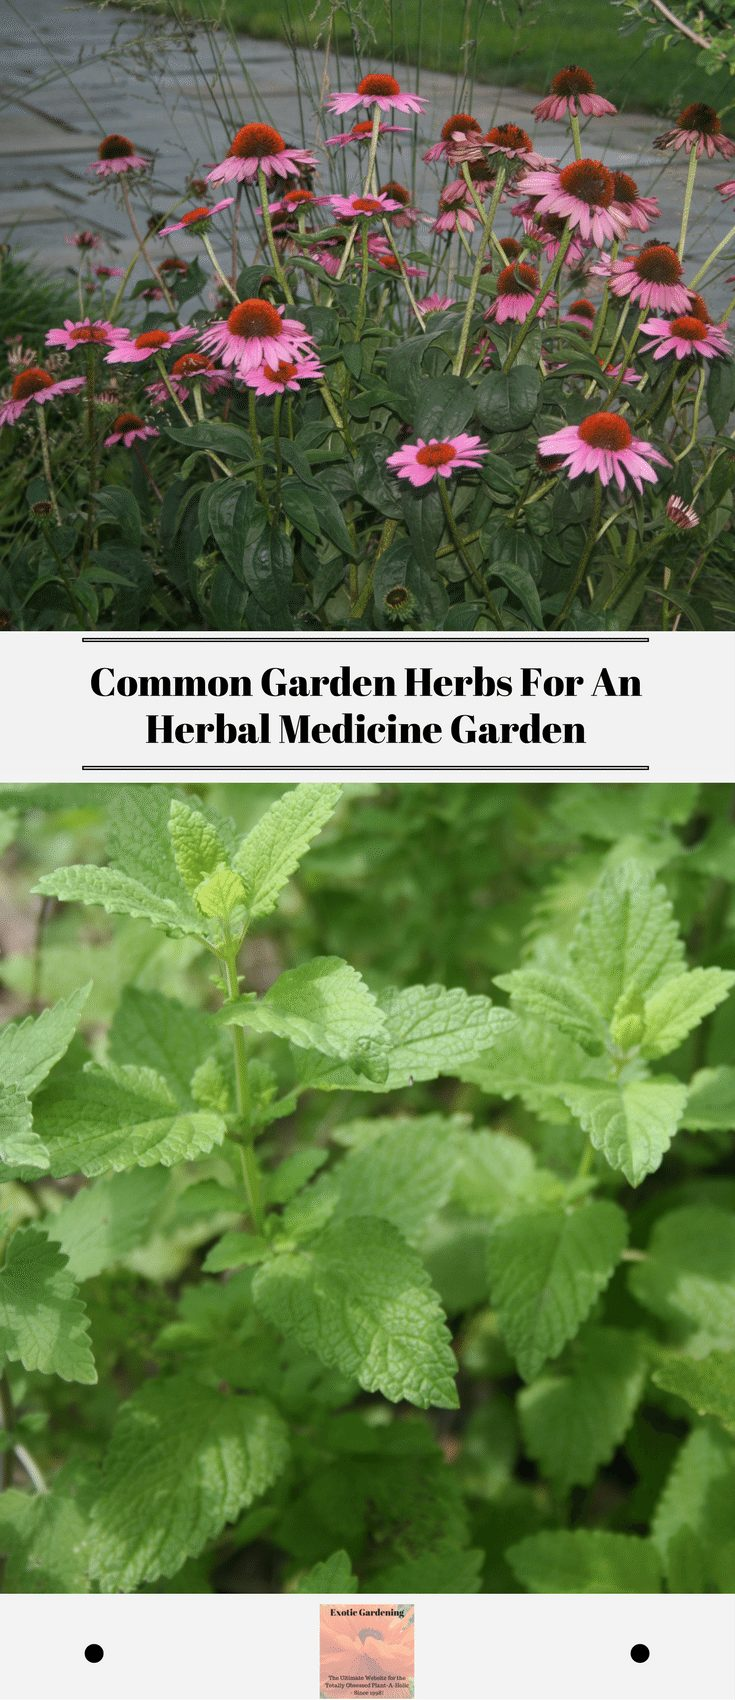 Common Garden Herbs For An Herbal Medicine Garden